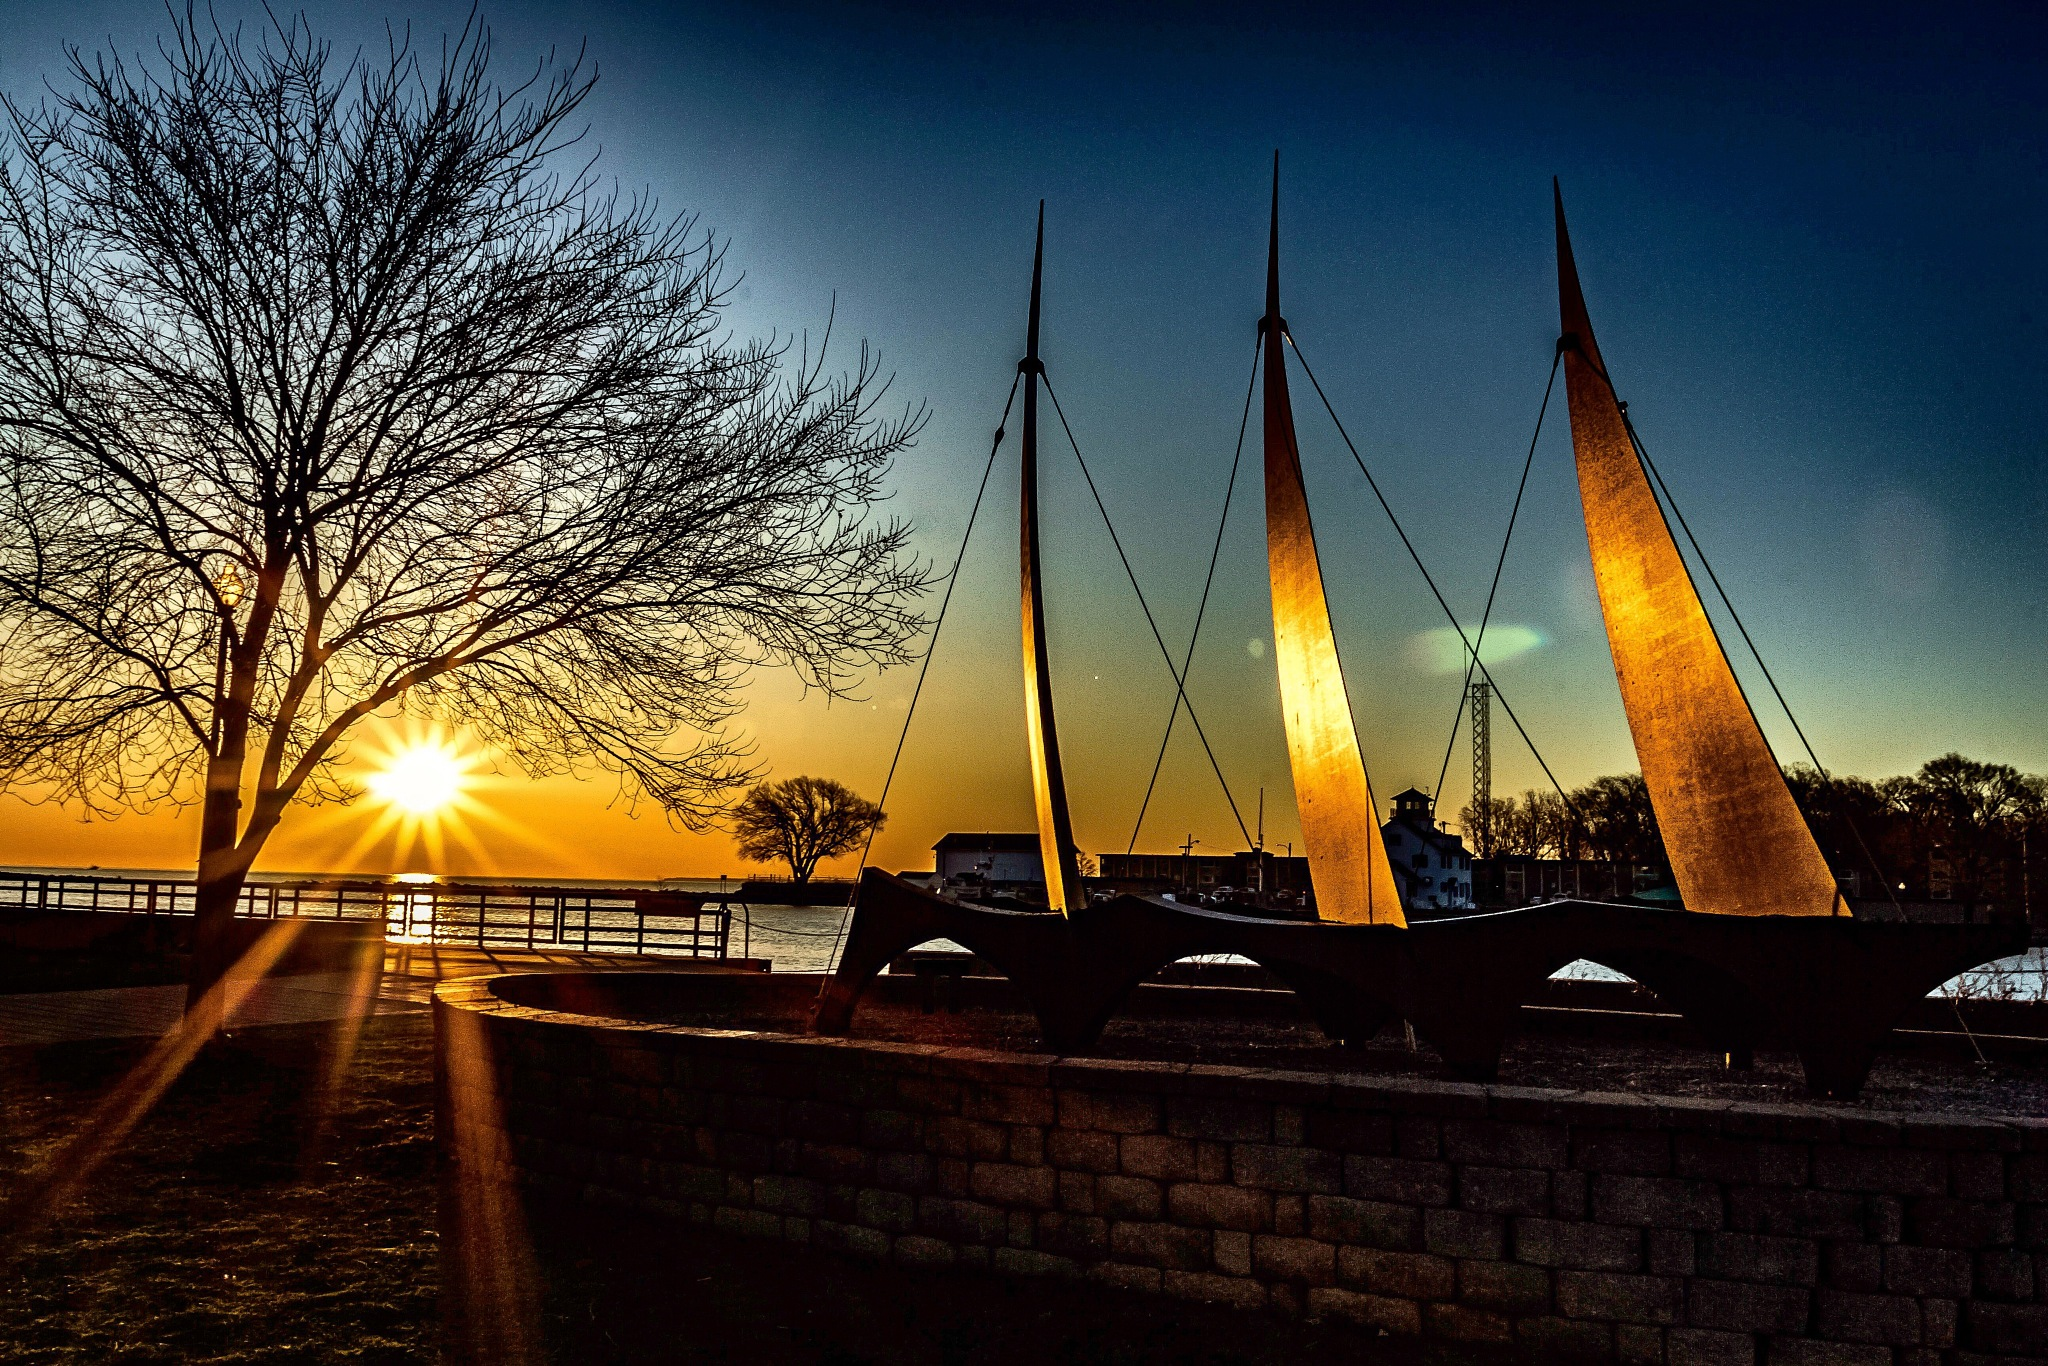 Sunrise over Lake Ontario at 3 Sails Sculpture by Robert Eichas